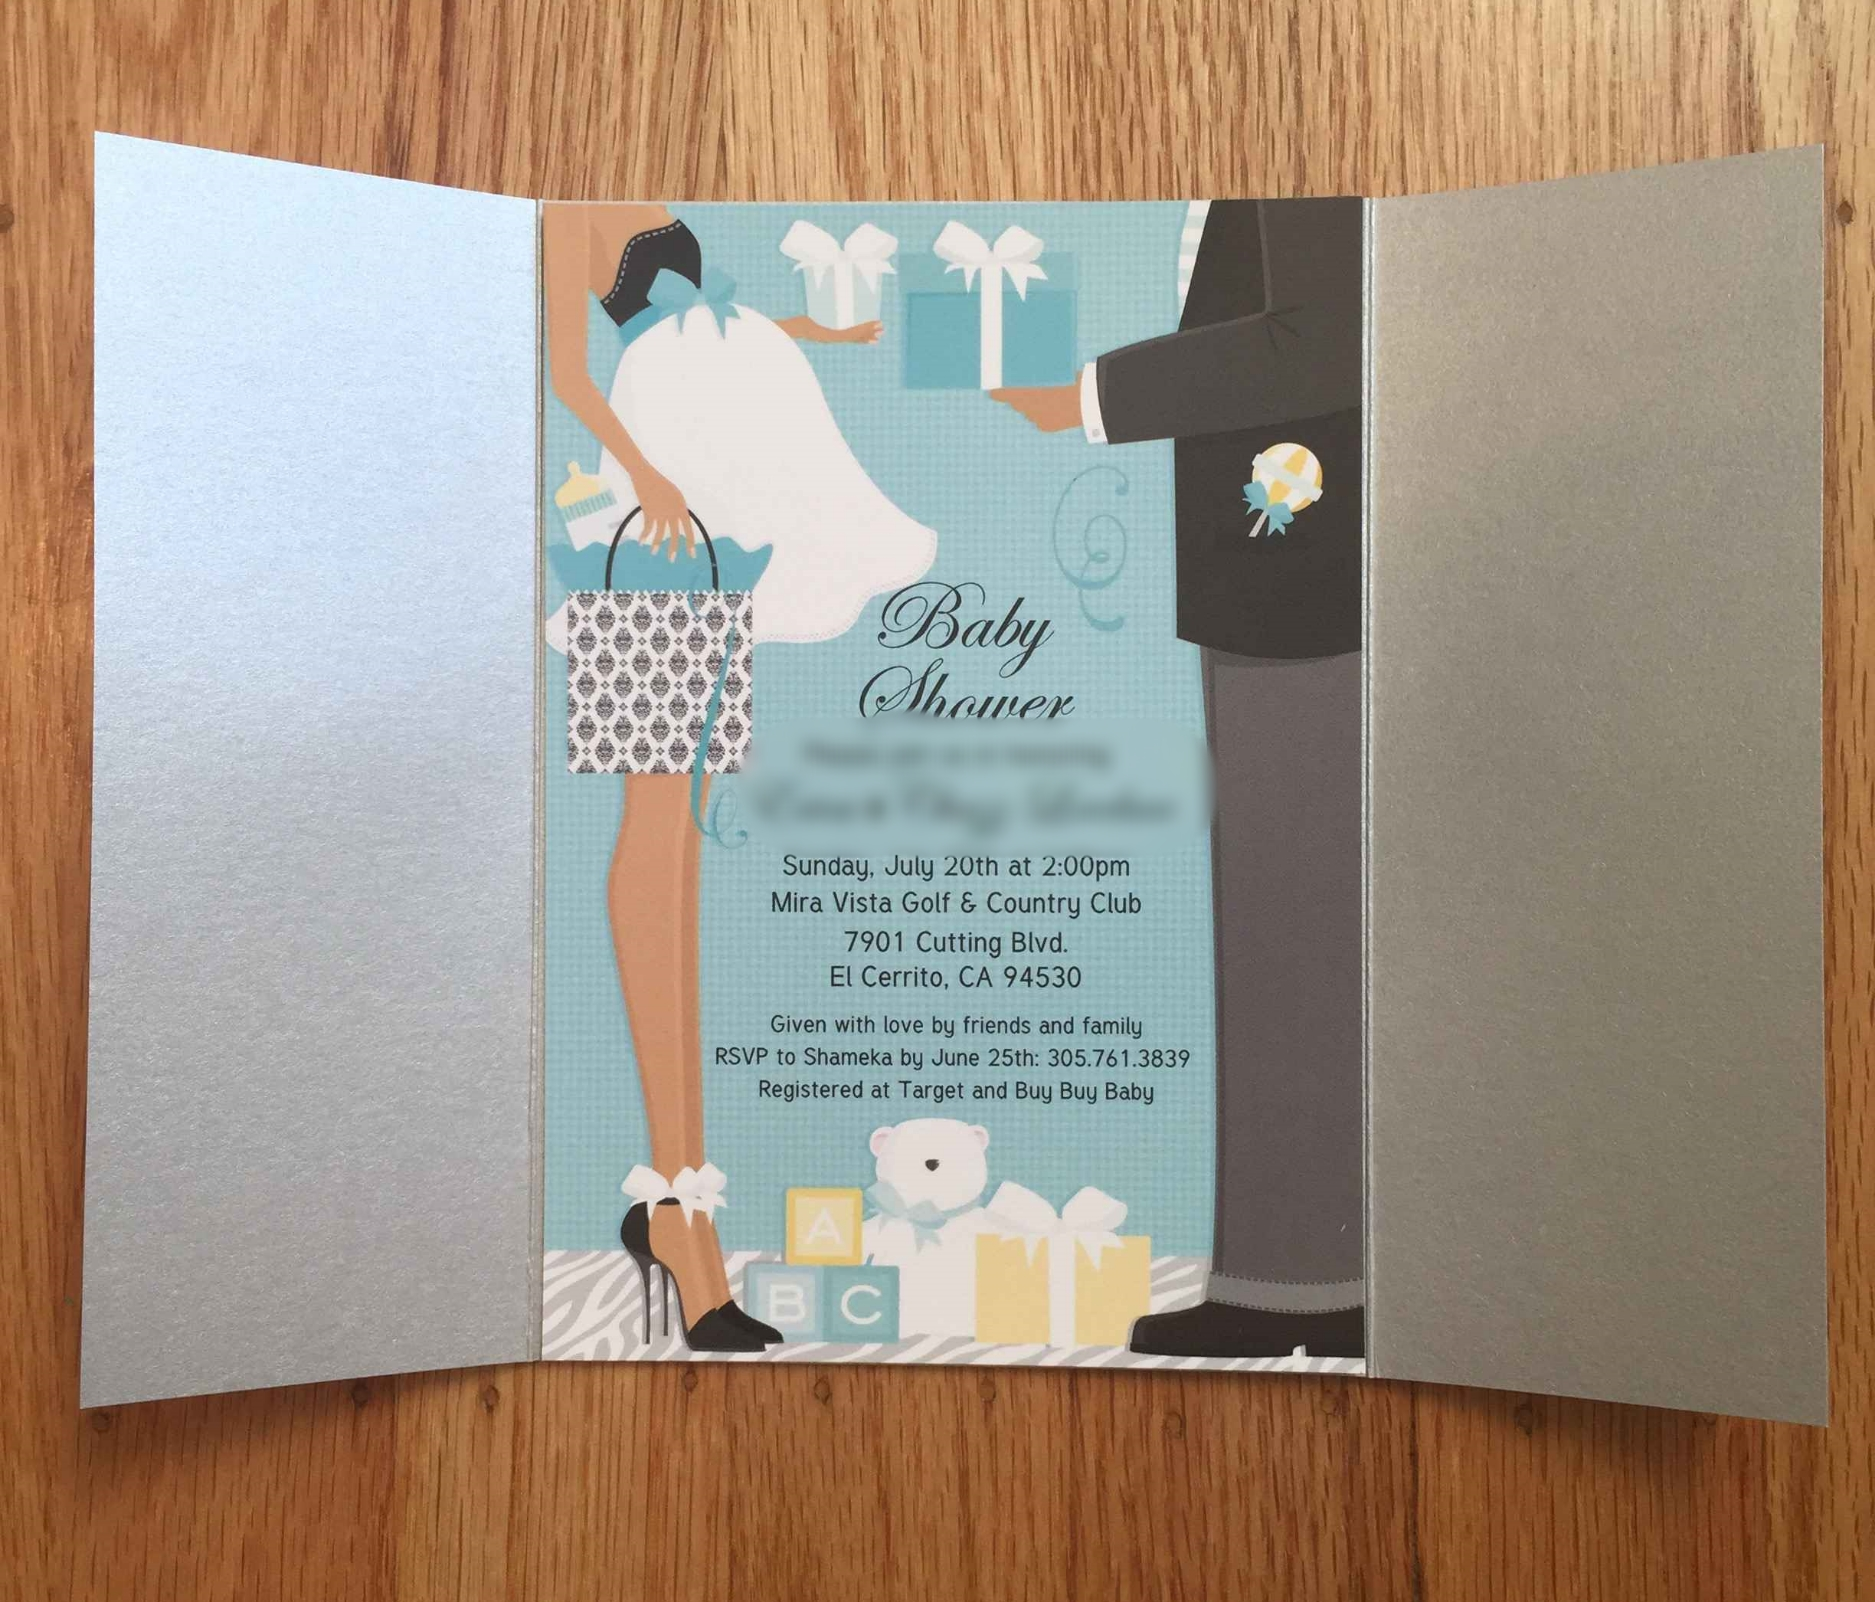 "img src=""httpwww.theparkwayevents.jpg"" alt=""San Francisco Bay Area Event Planner Baby Shower Invitation"".jpg"